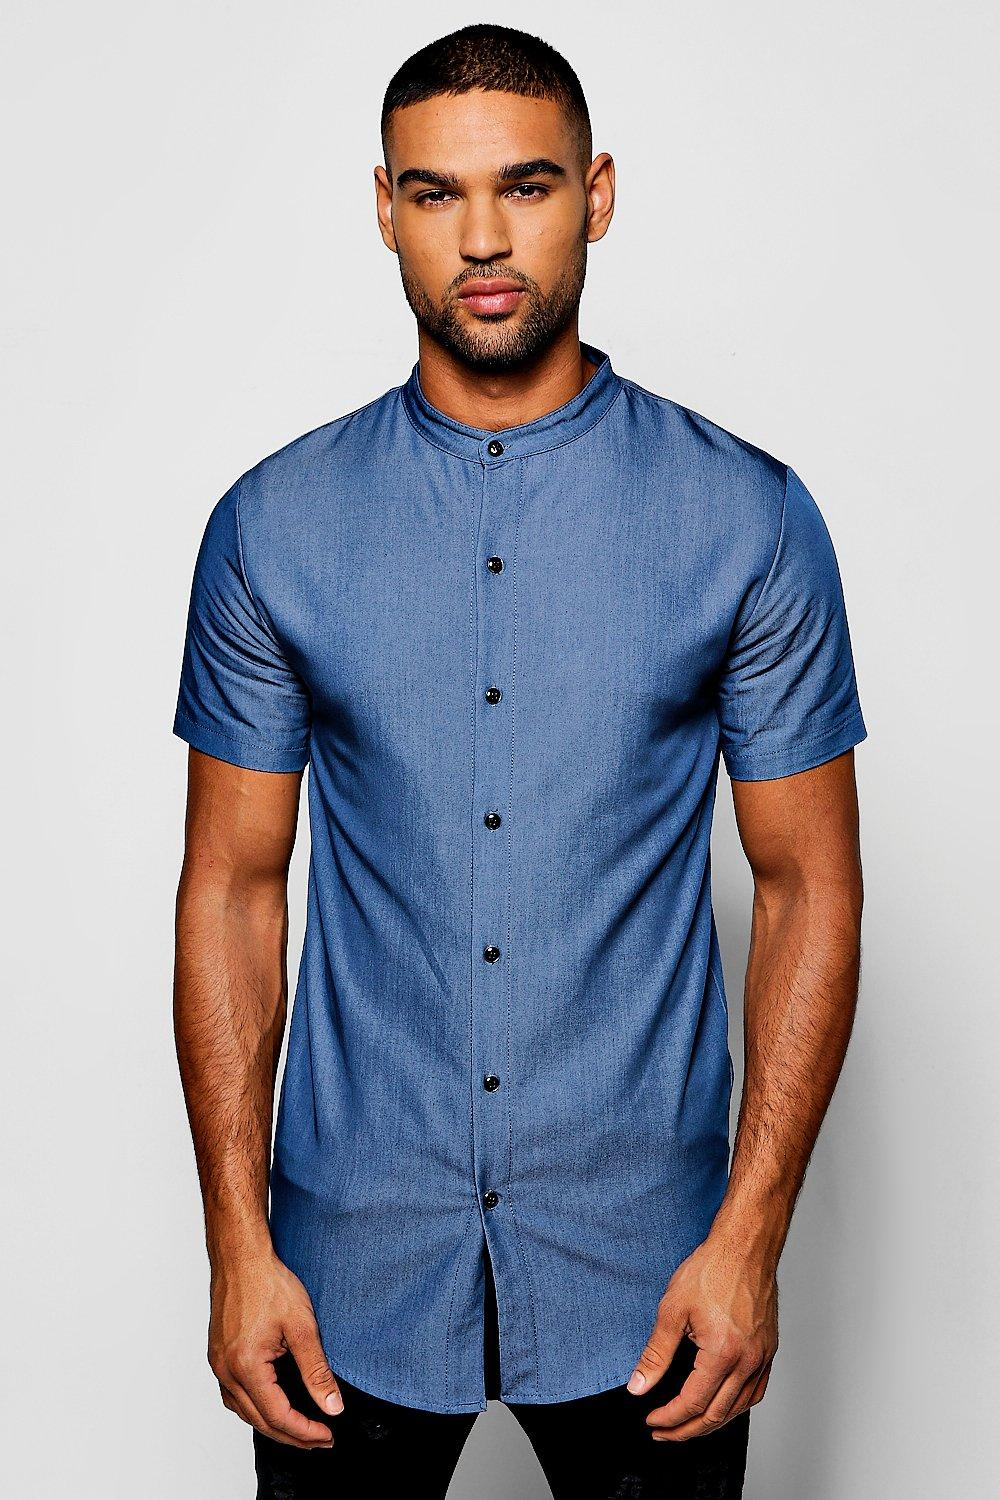 32ec9bb72a443a Mens Blue Short Sleeve Denim Chambray Shirt with Grandad Collar. Hover to  zoom. Close video